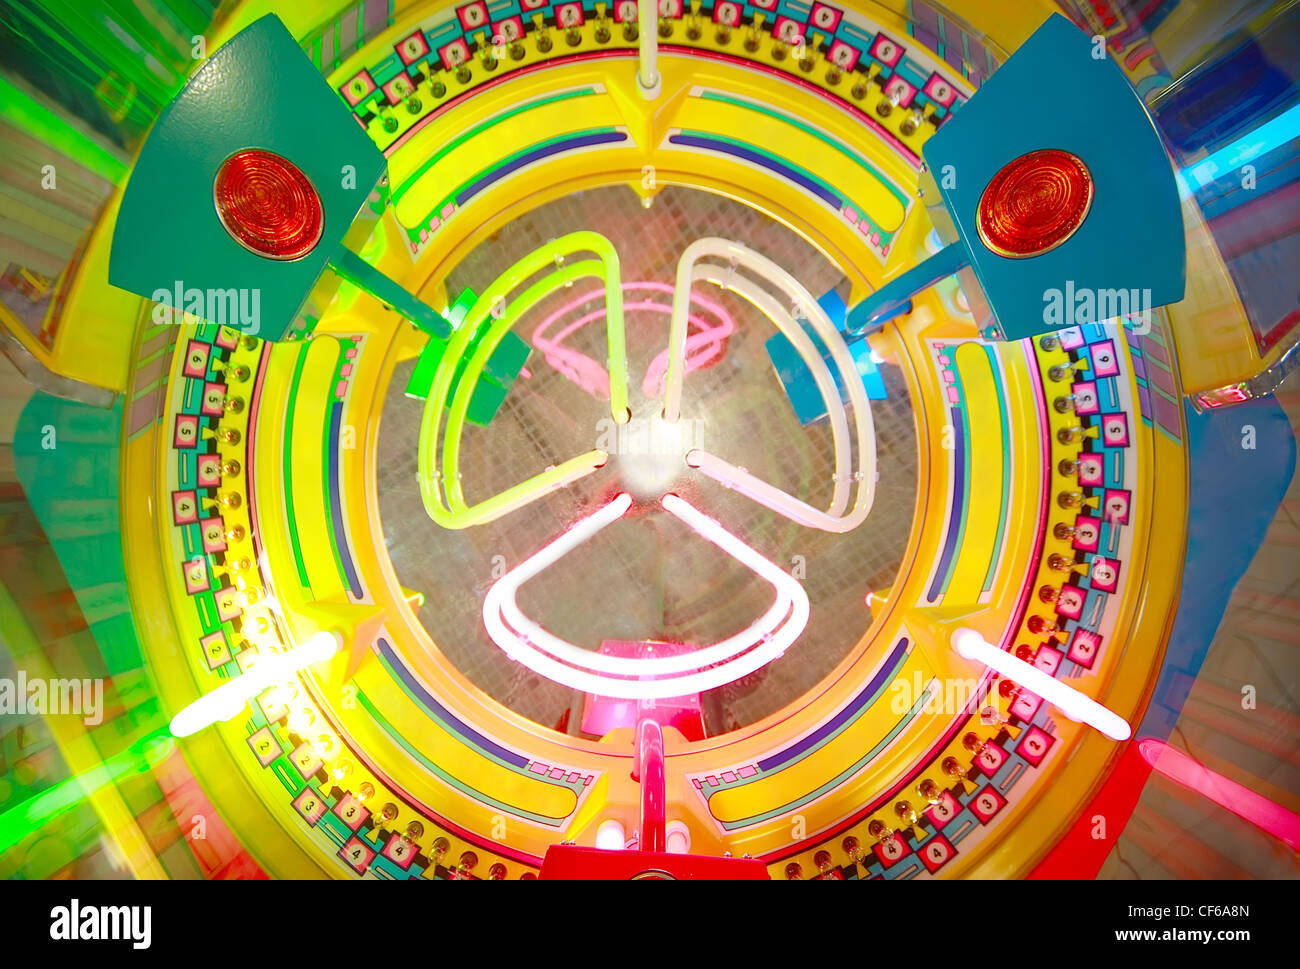 Close-up view of colorful electronic roulette in arcade machine - Stock Image